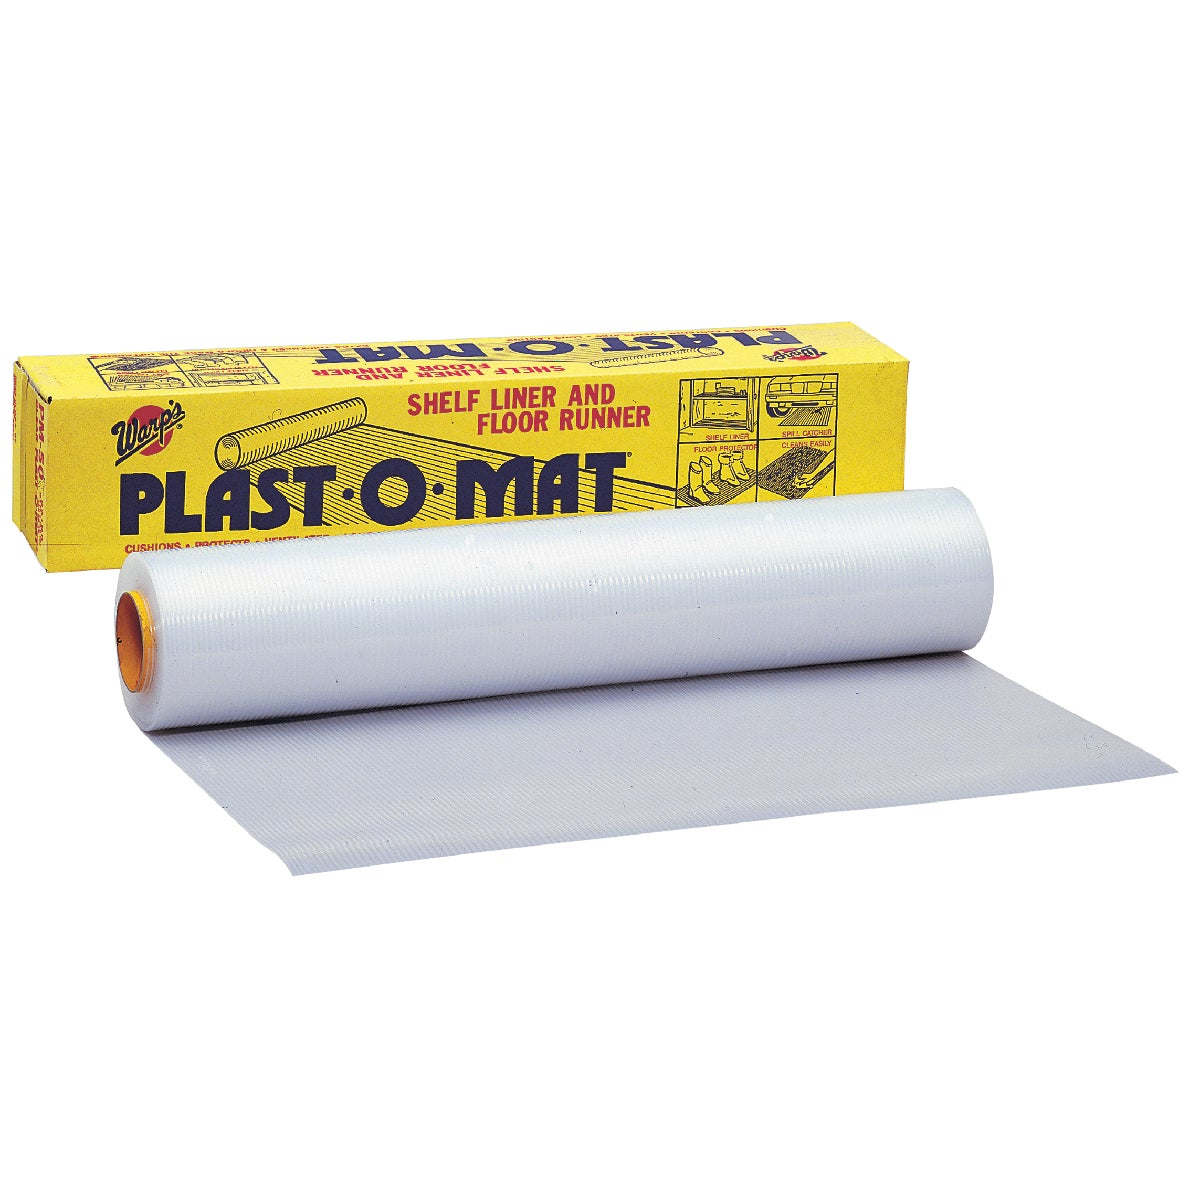 30X50' CLEAR PLASTIC MAT - PM50 by Warp Bros